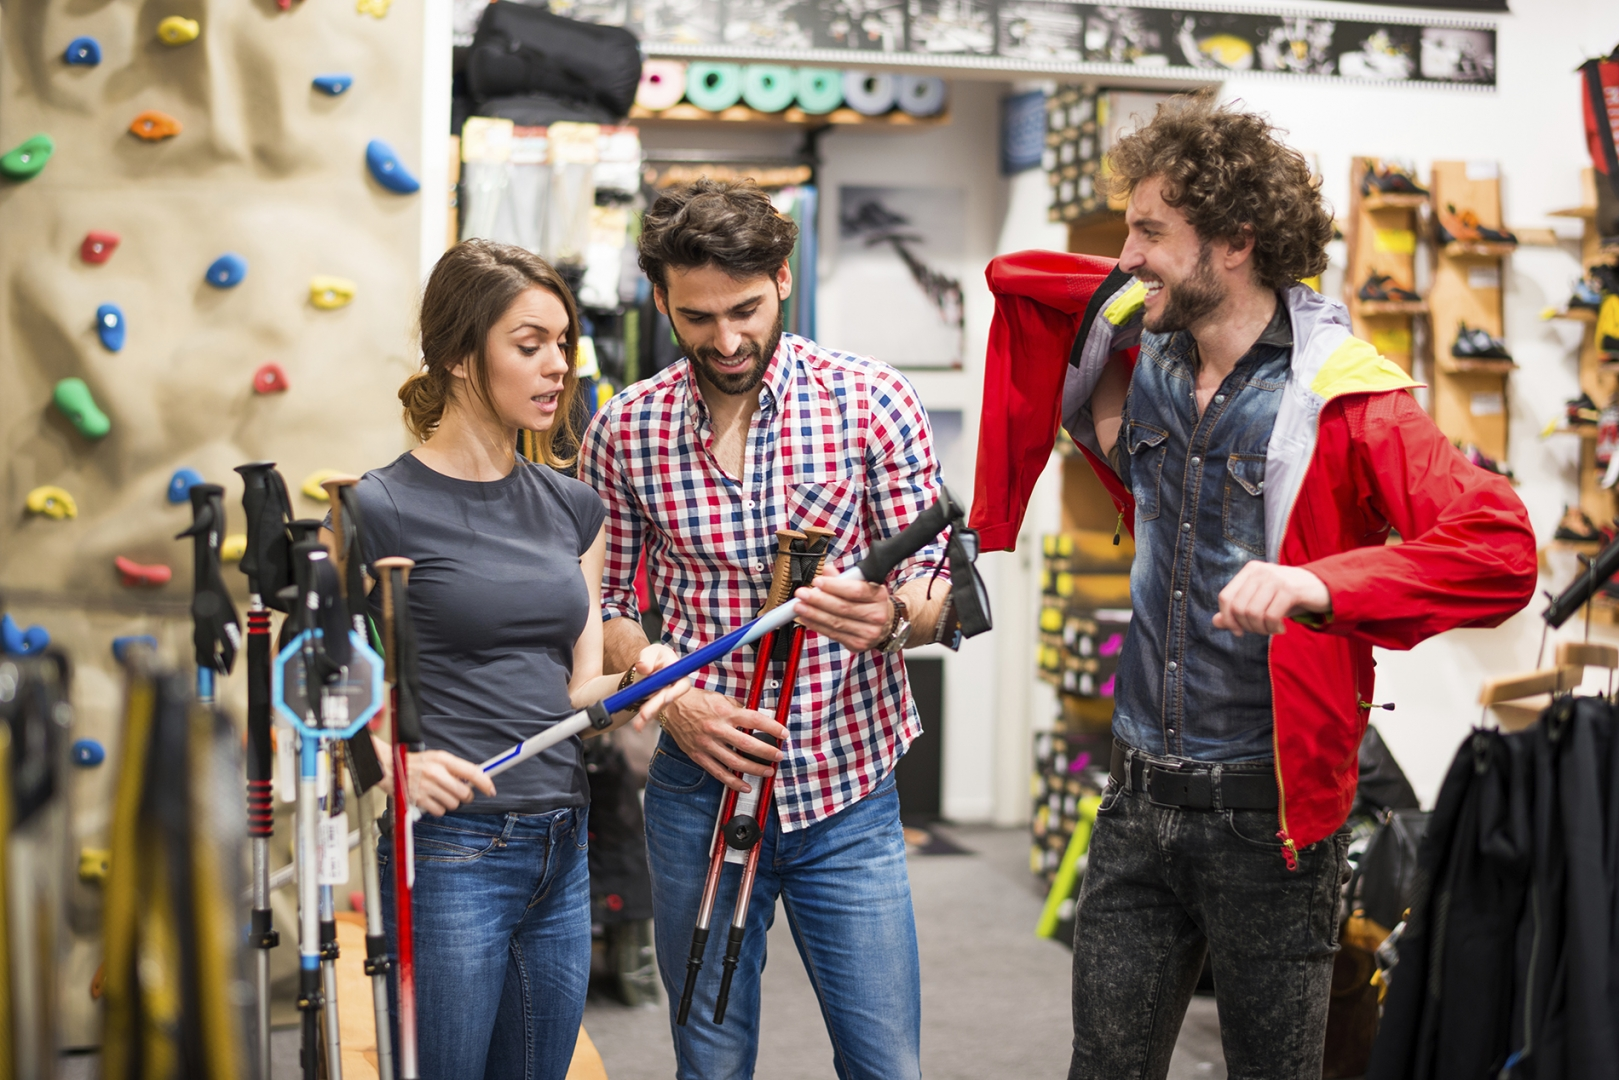 customers shopping at a sports equipment retailer